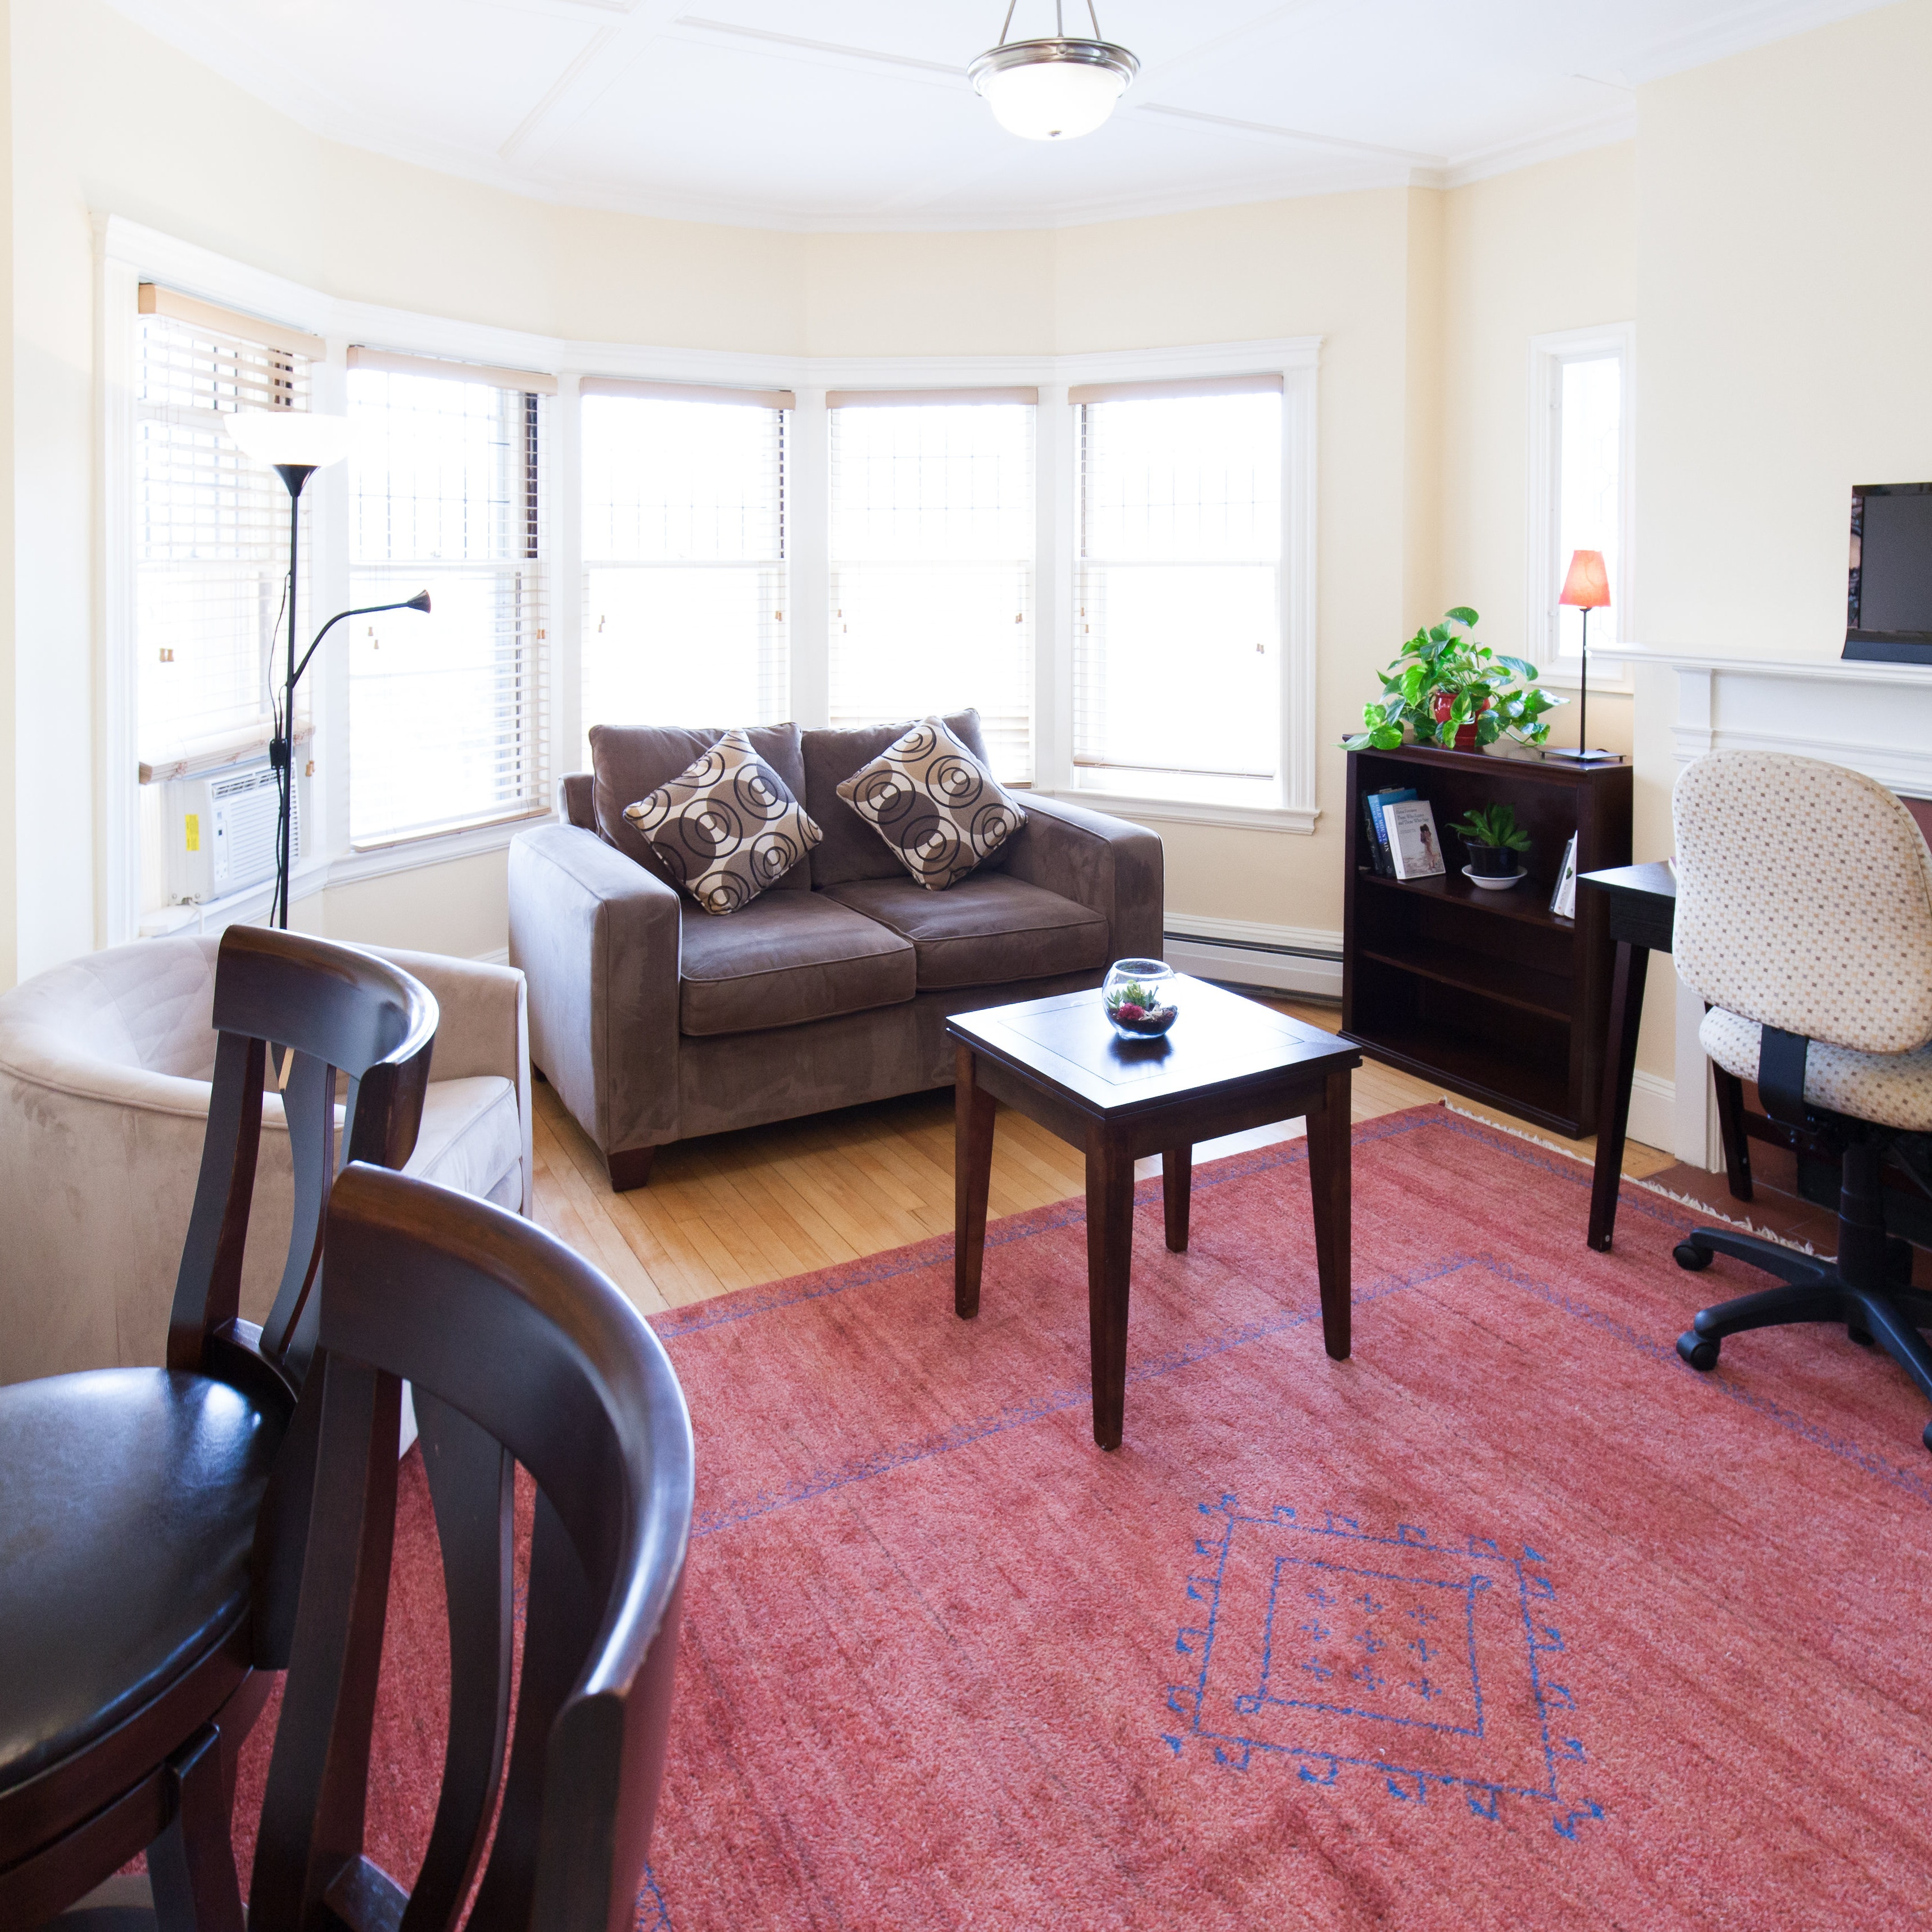 Living area of 83 Brattle Street studio apartment with alcove with furnishings